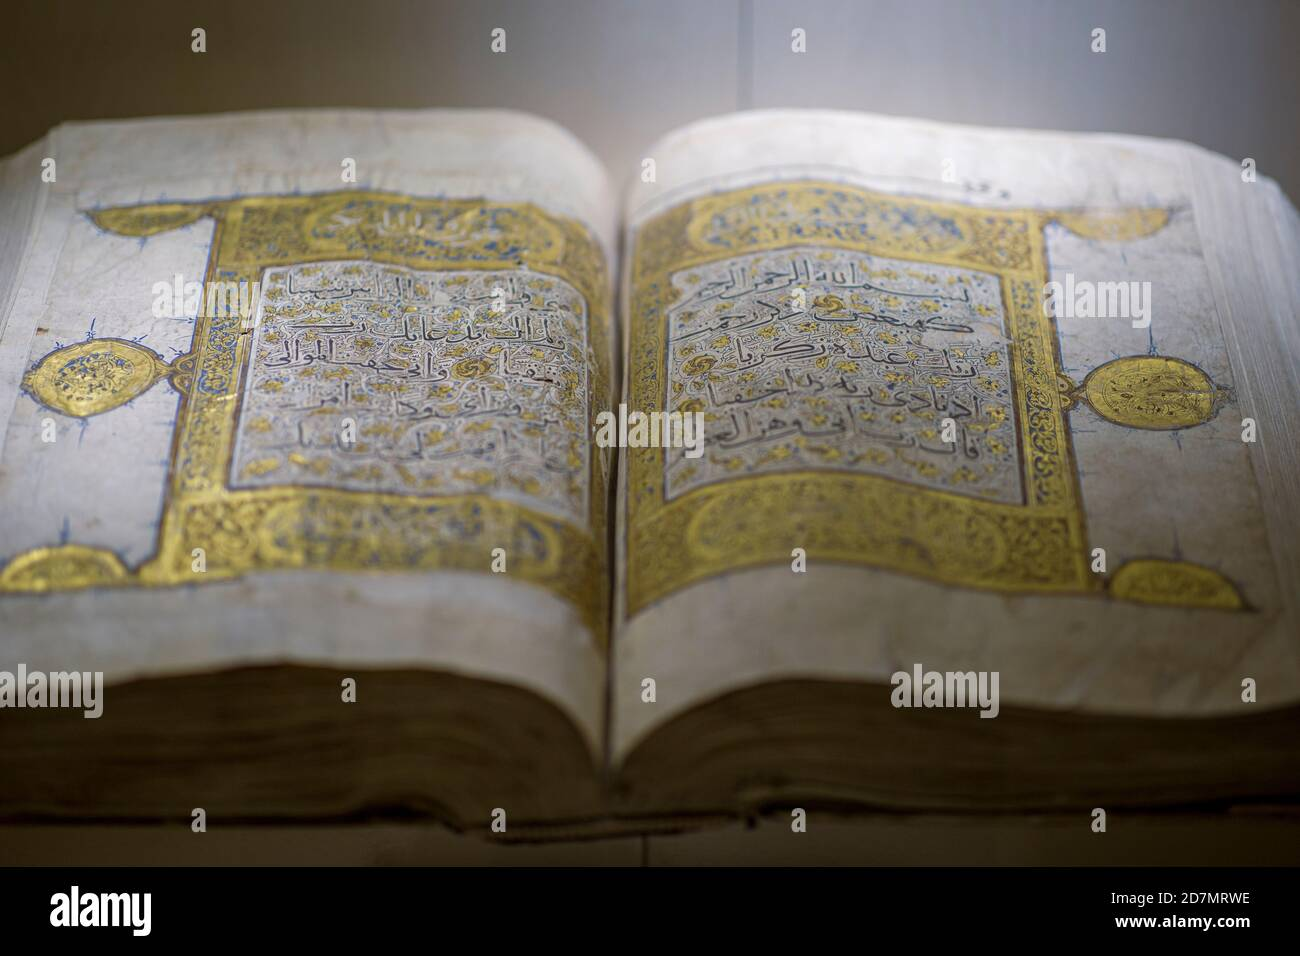 Ankara, Turkey; 08 October 2020: Manuscript Quran view from ancient times Stock Photo